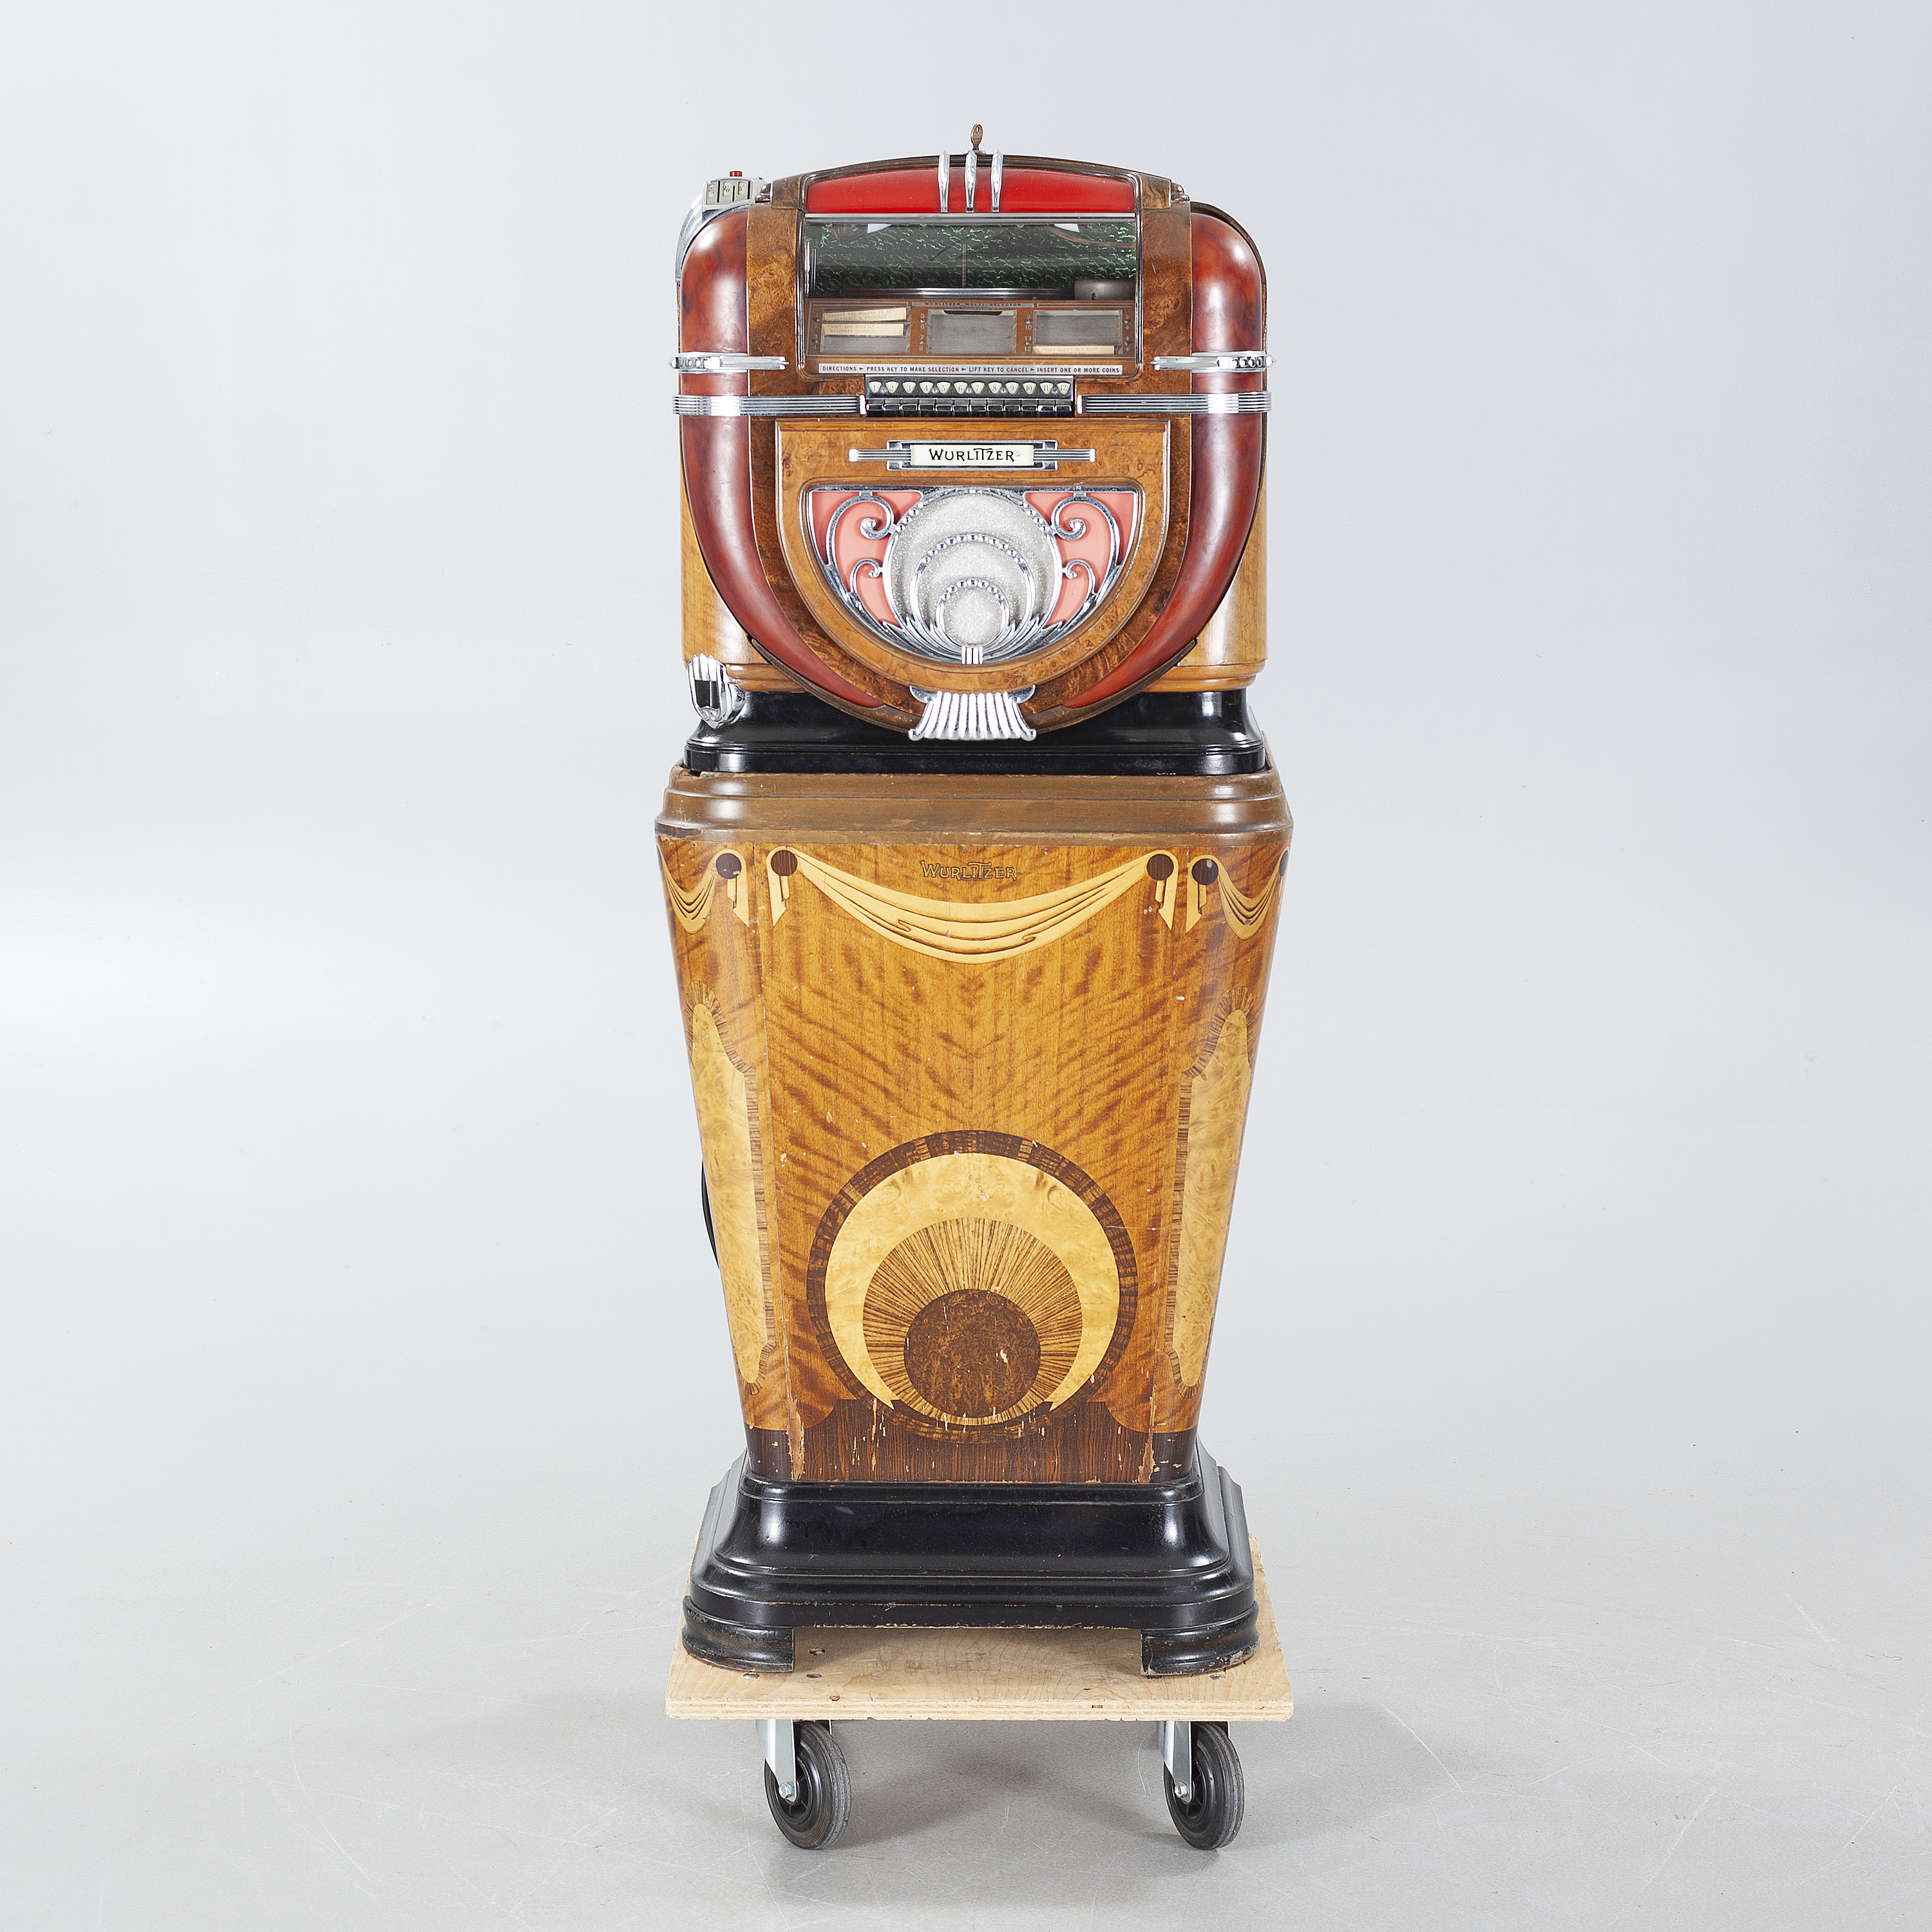 JUKEBOX, Wurlitzer Model 81, on original wooden stand